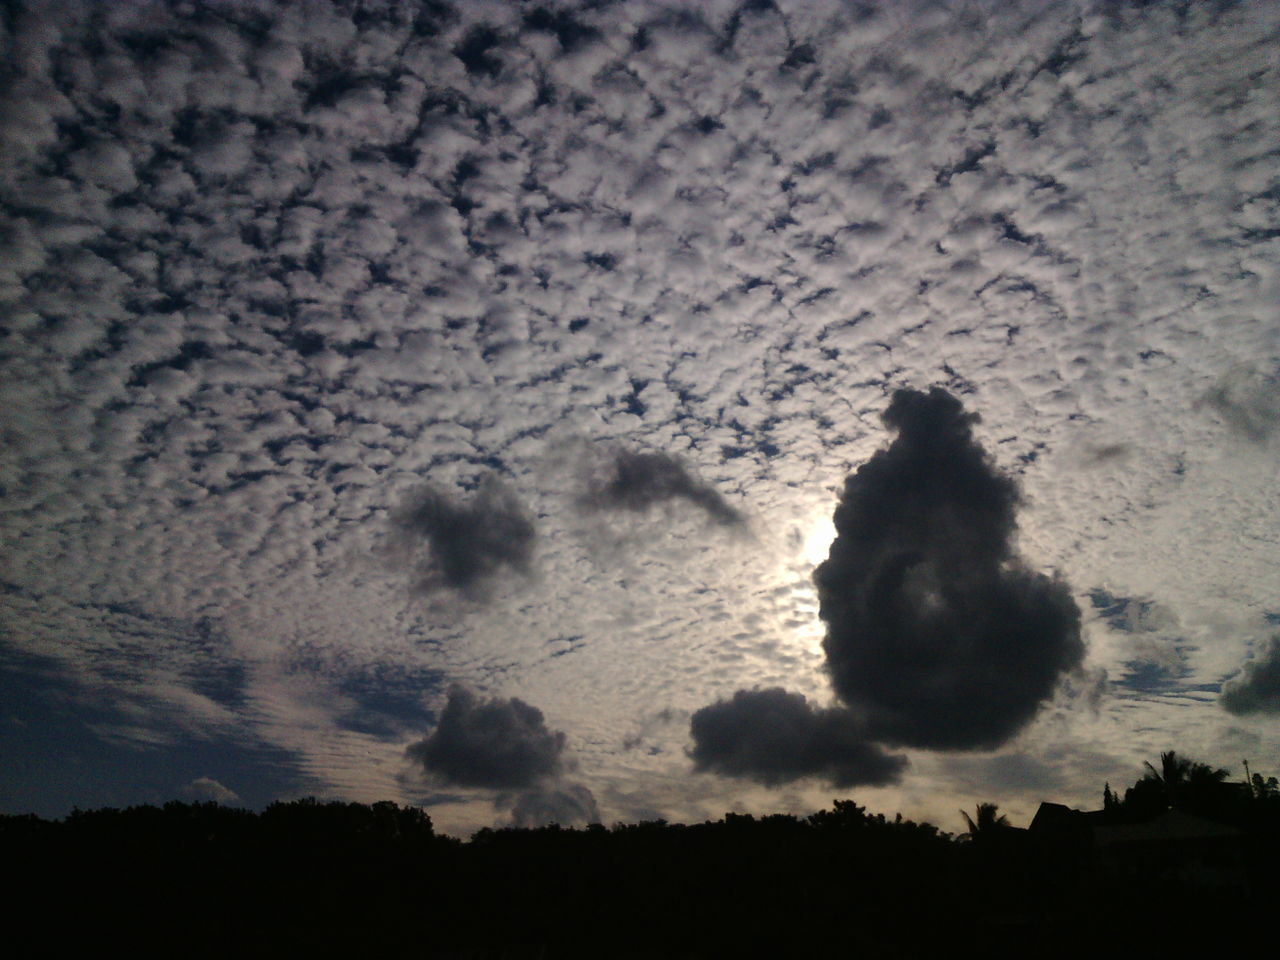 sky, nature, no people, cloud - sky, beauty in nature, low angle view, silhouette, outdoors, sunset, day, animal themes